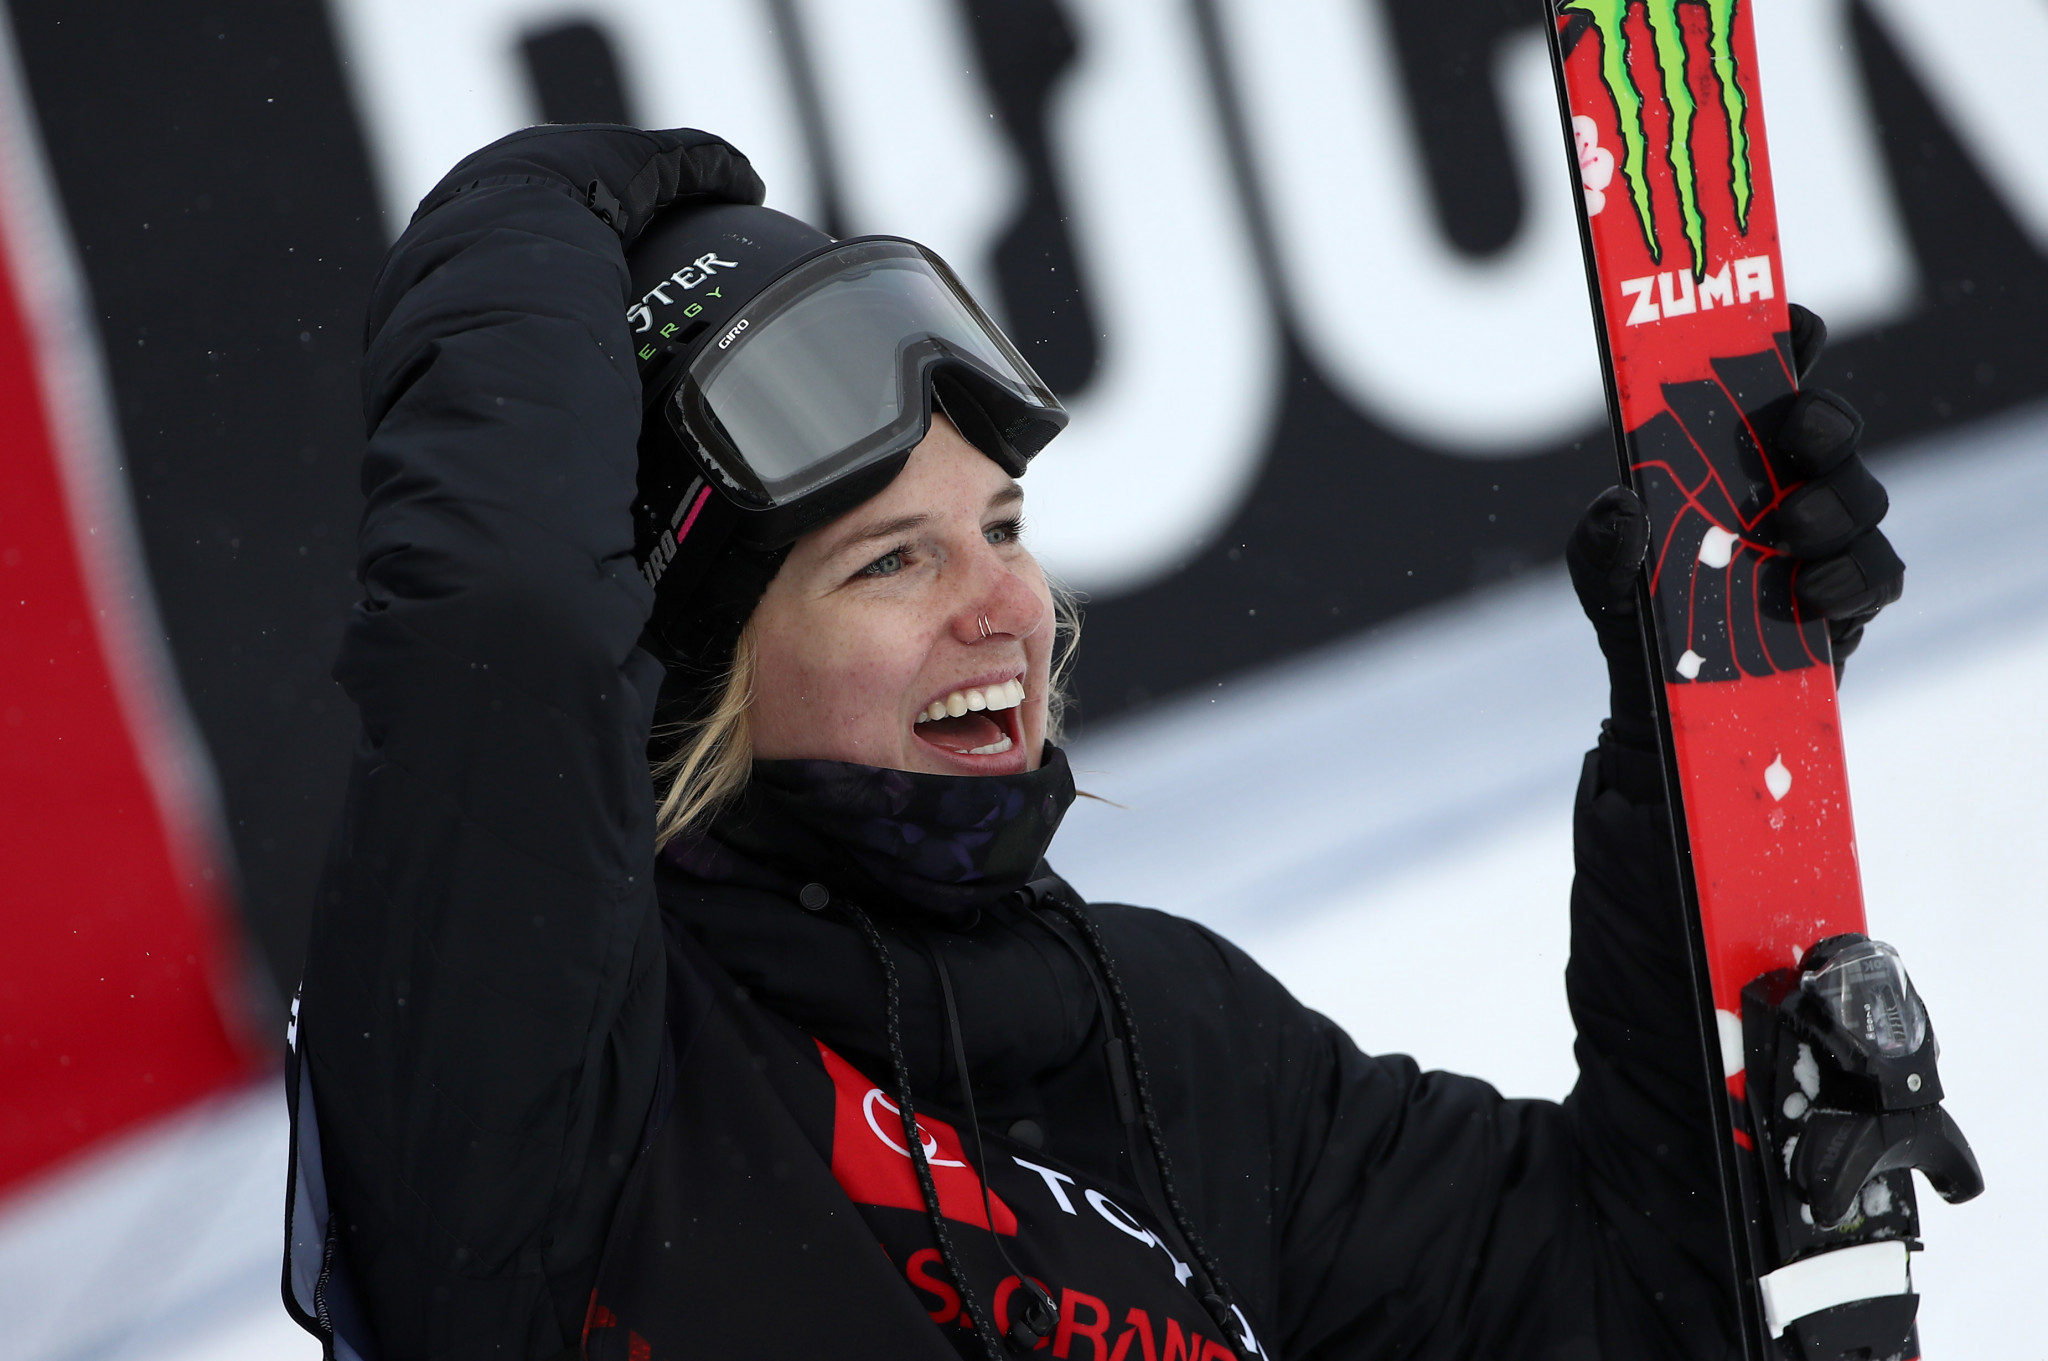 Sharpe among winners on bumper day of freestyle and snowboard World Cup action in Mammoth Mountain